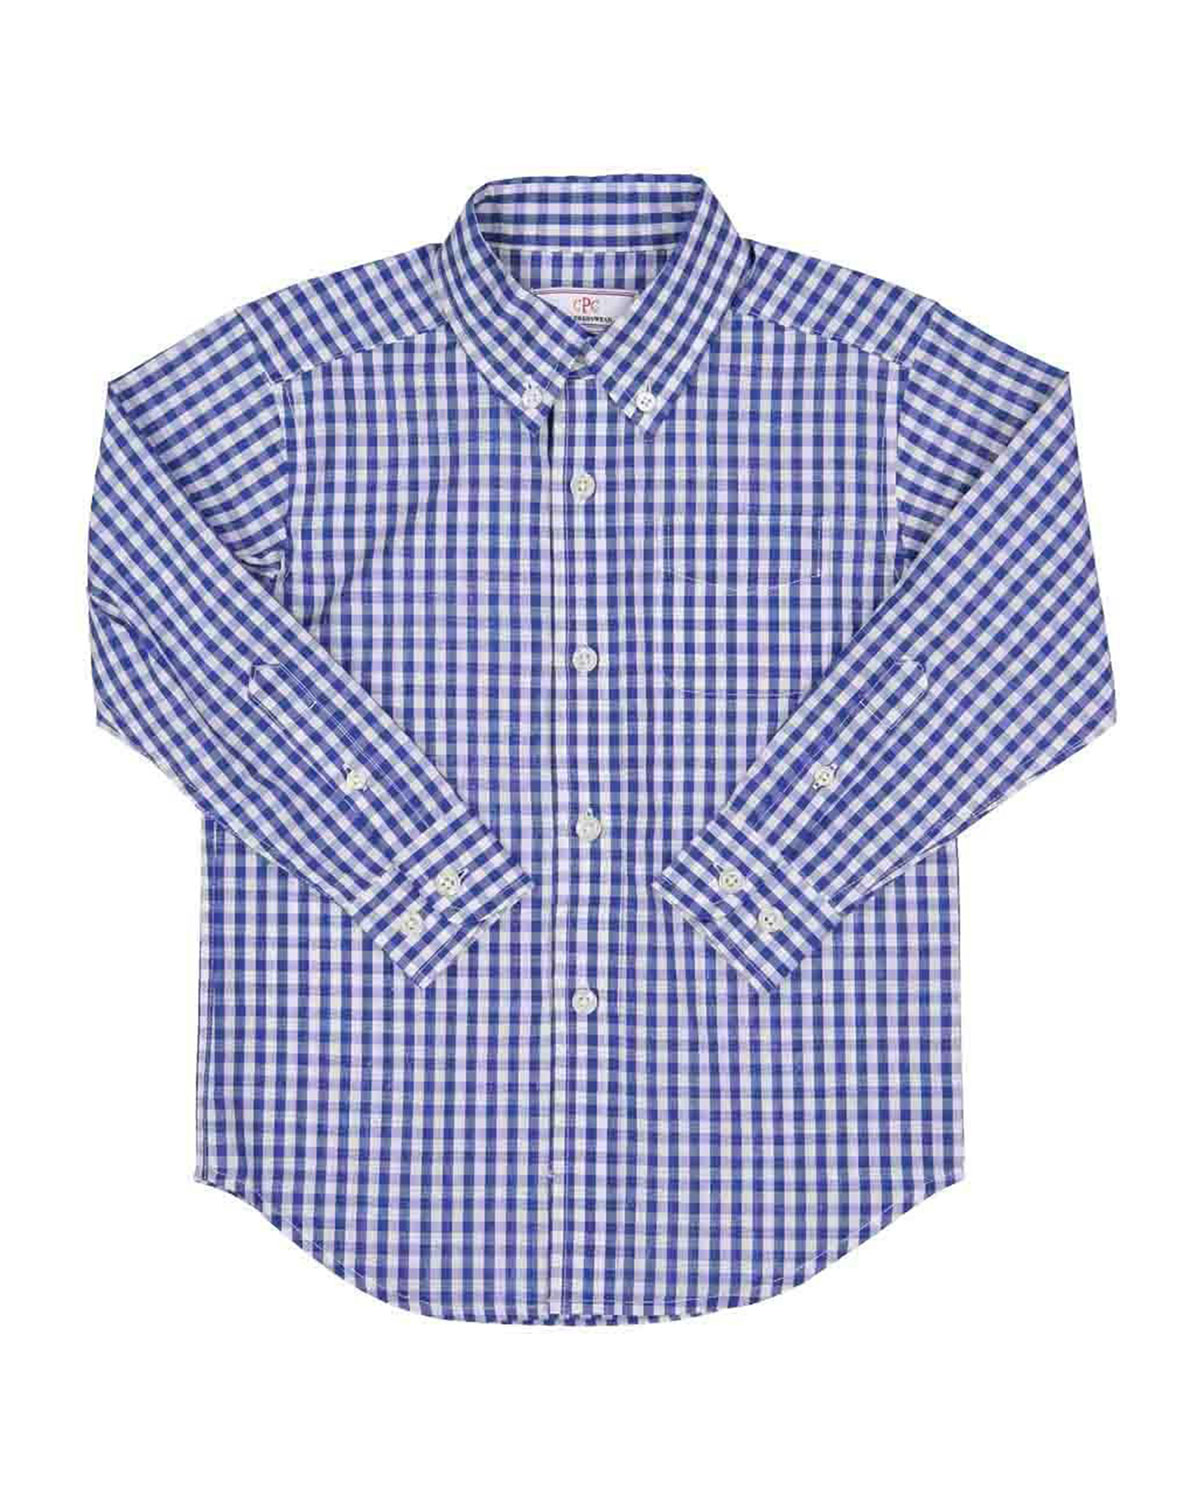 Classic Prep Childrenswear Boy's Owen Gingham Button-Down Shirt, Size 2-14